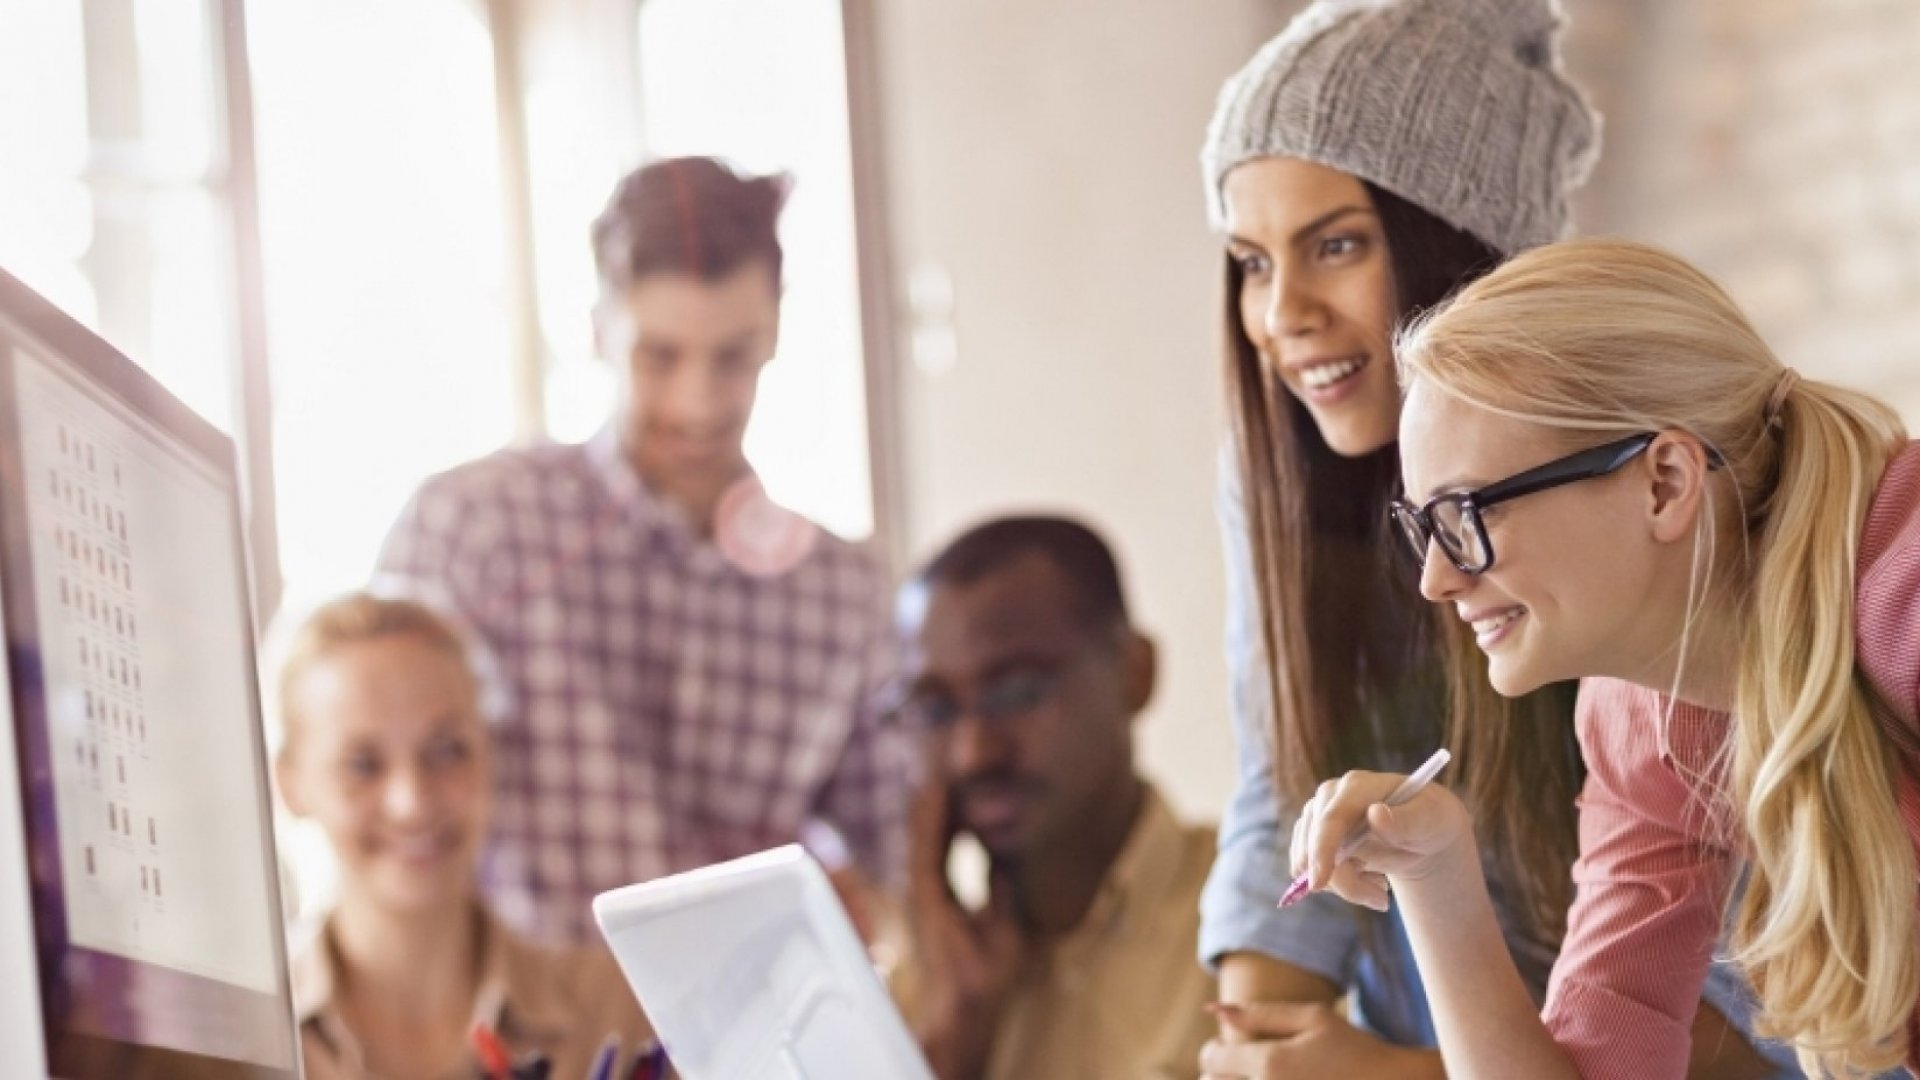 5 Ways to Promote Female Camaraderie at Work